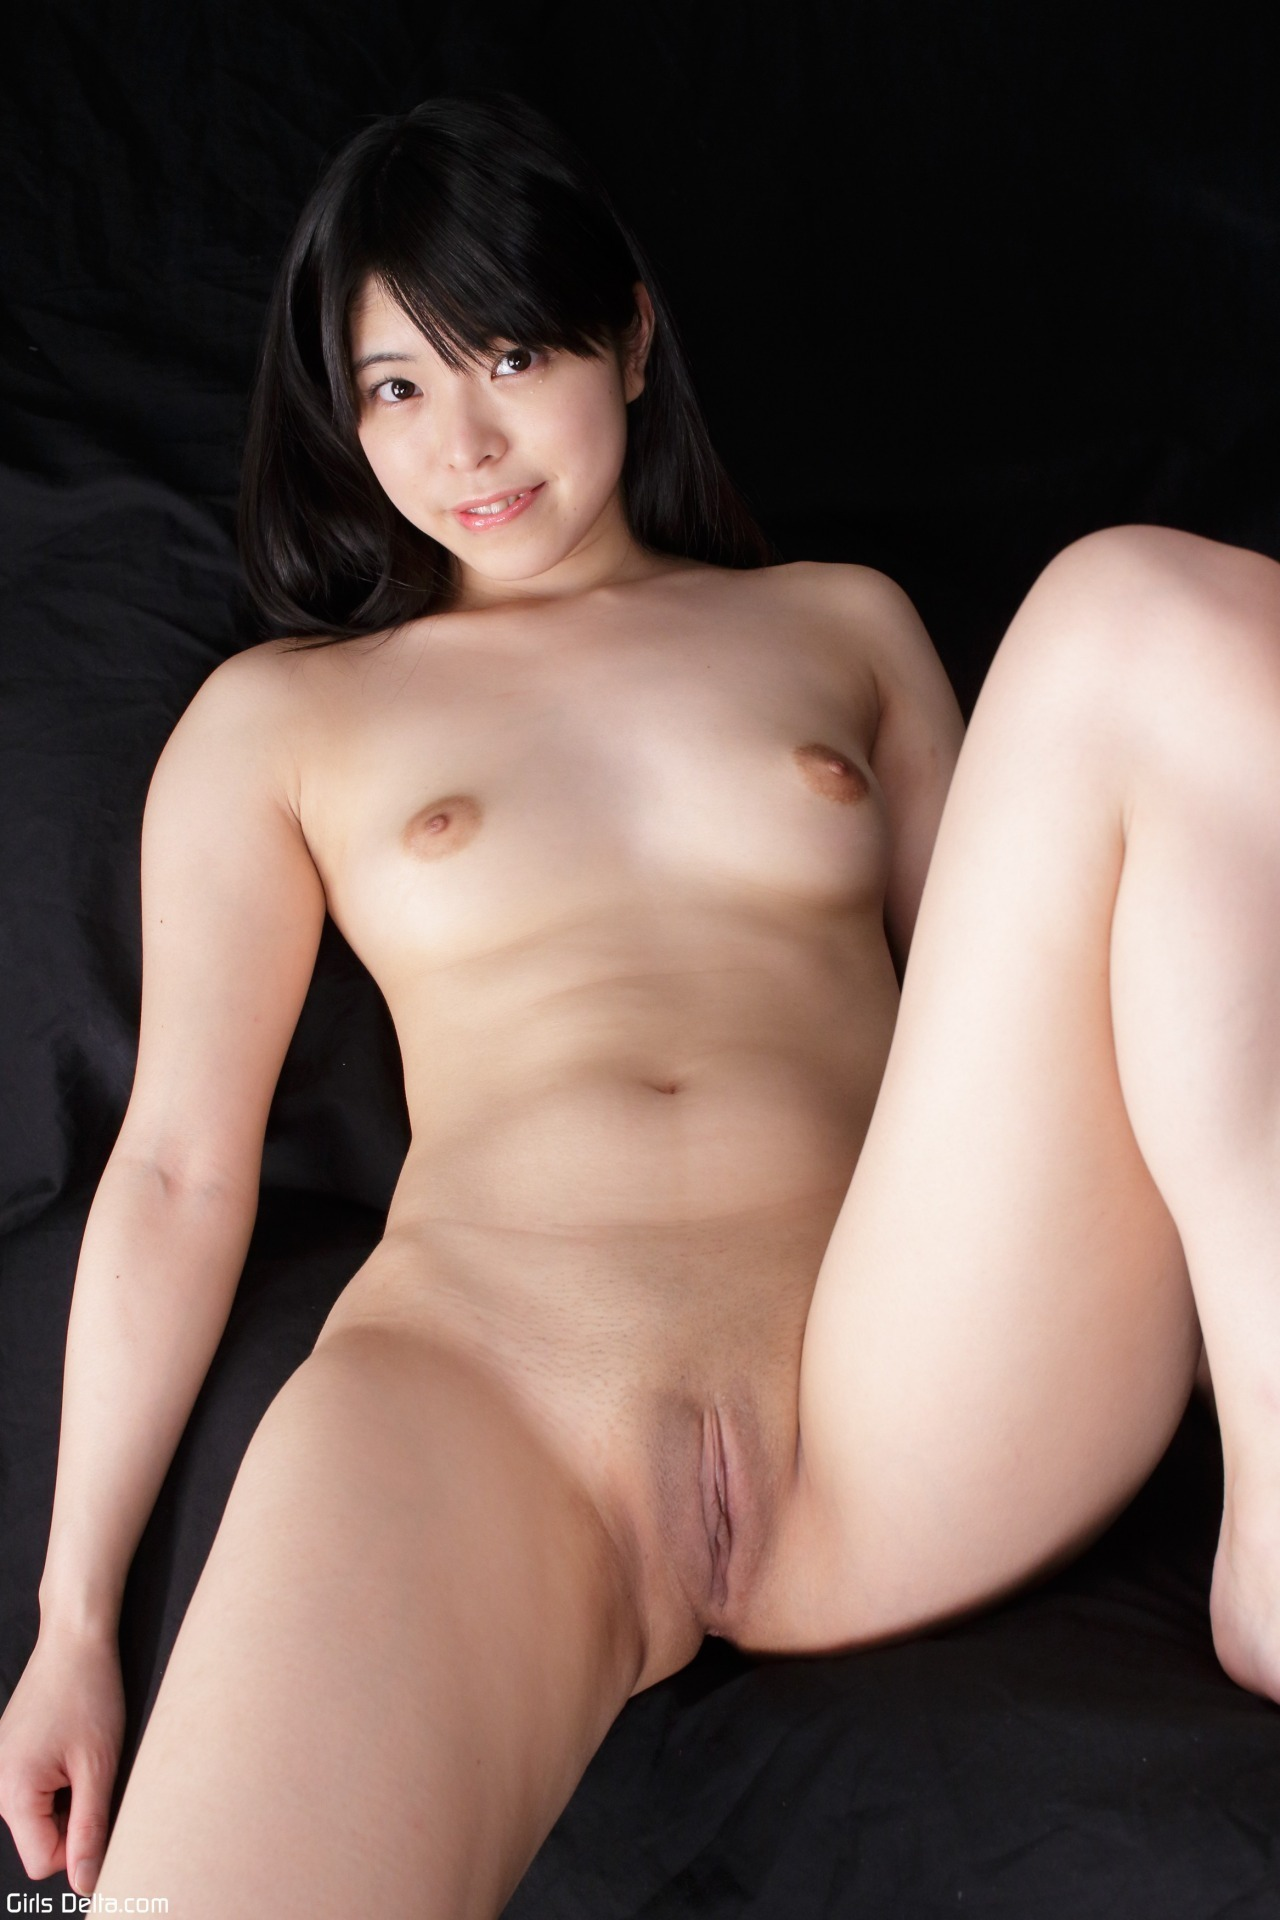 Japanese mature vagina nude girls pictures